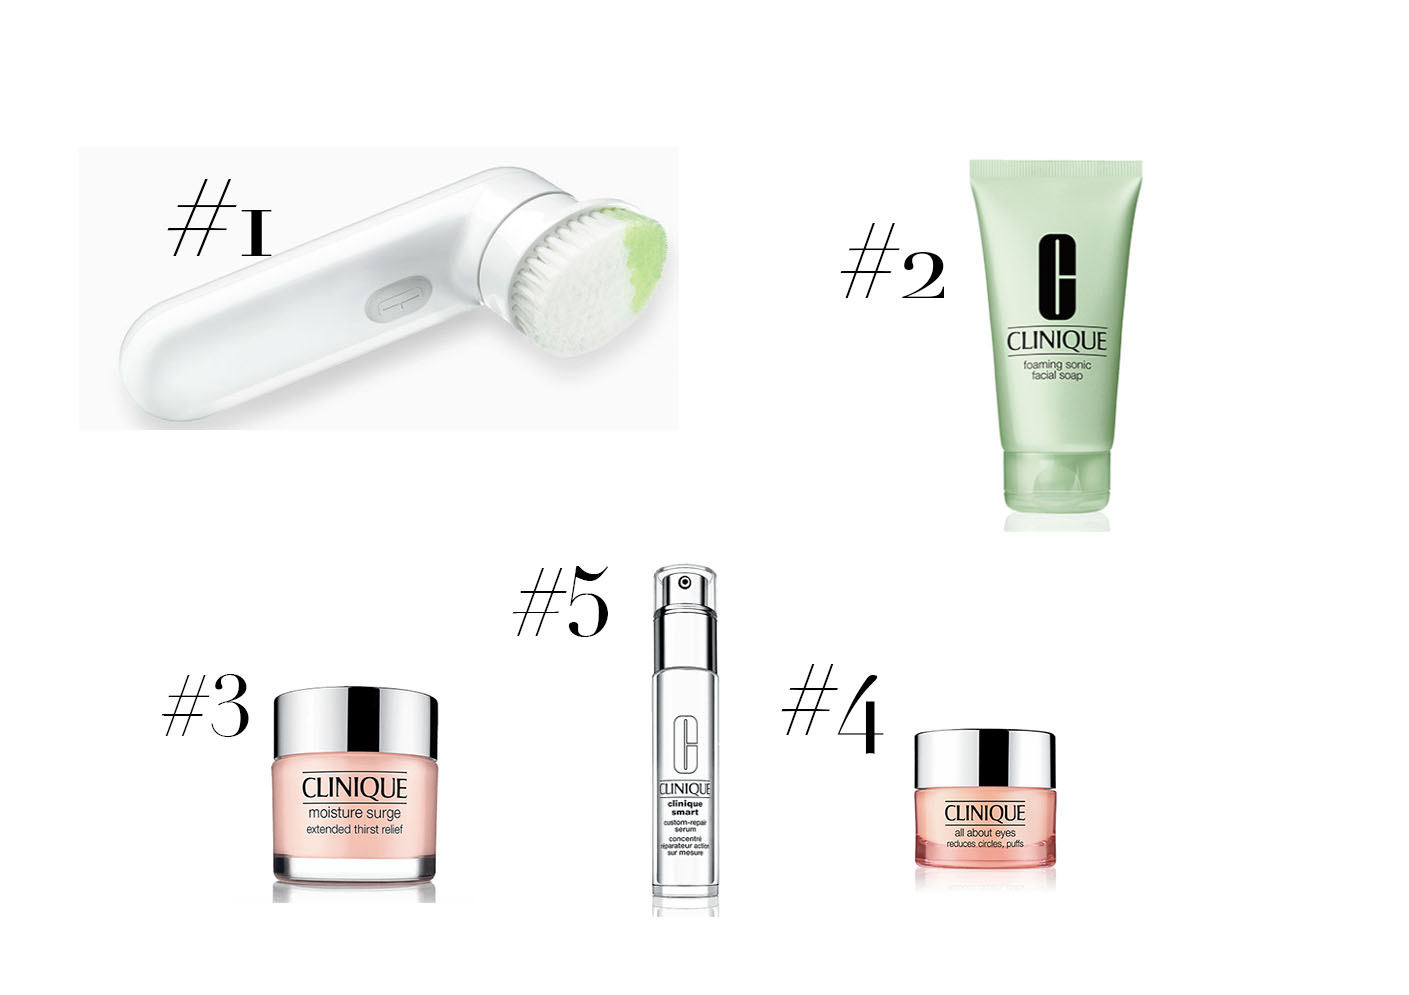 Clinique Skincare Products